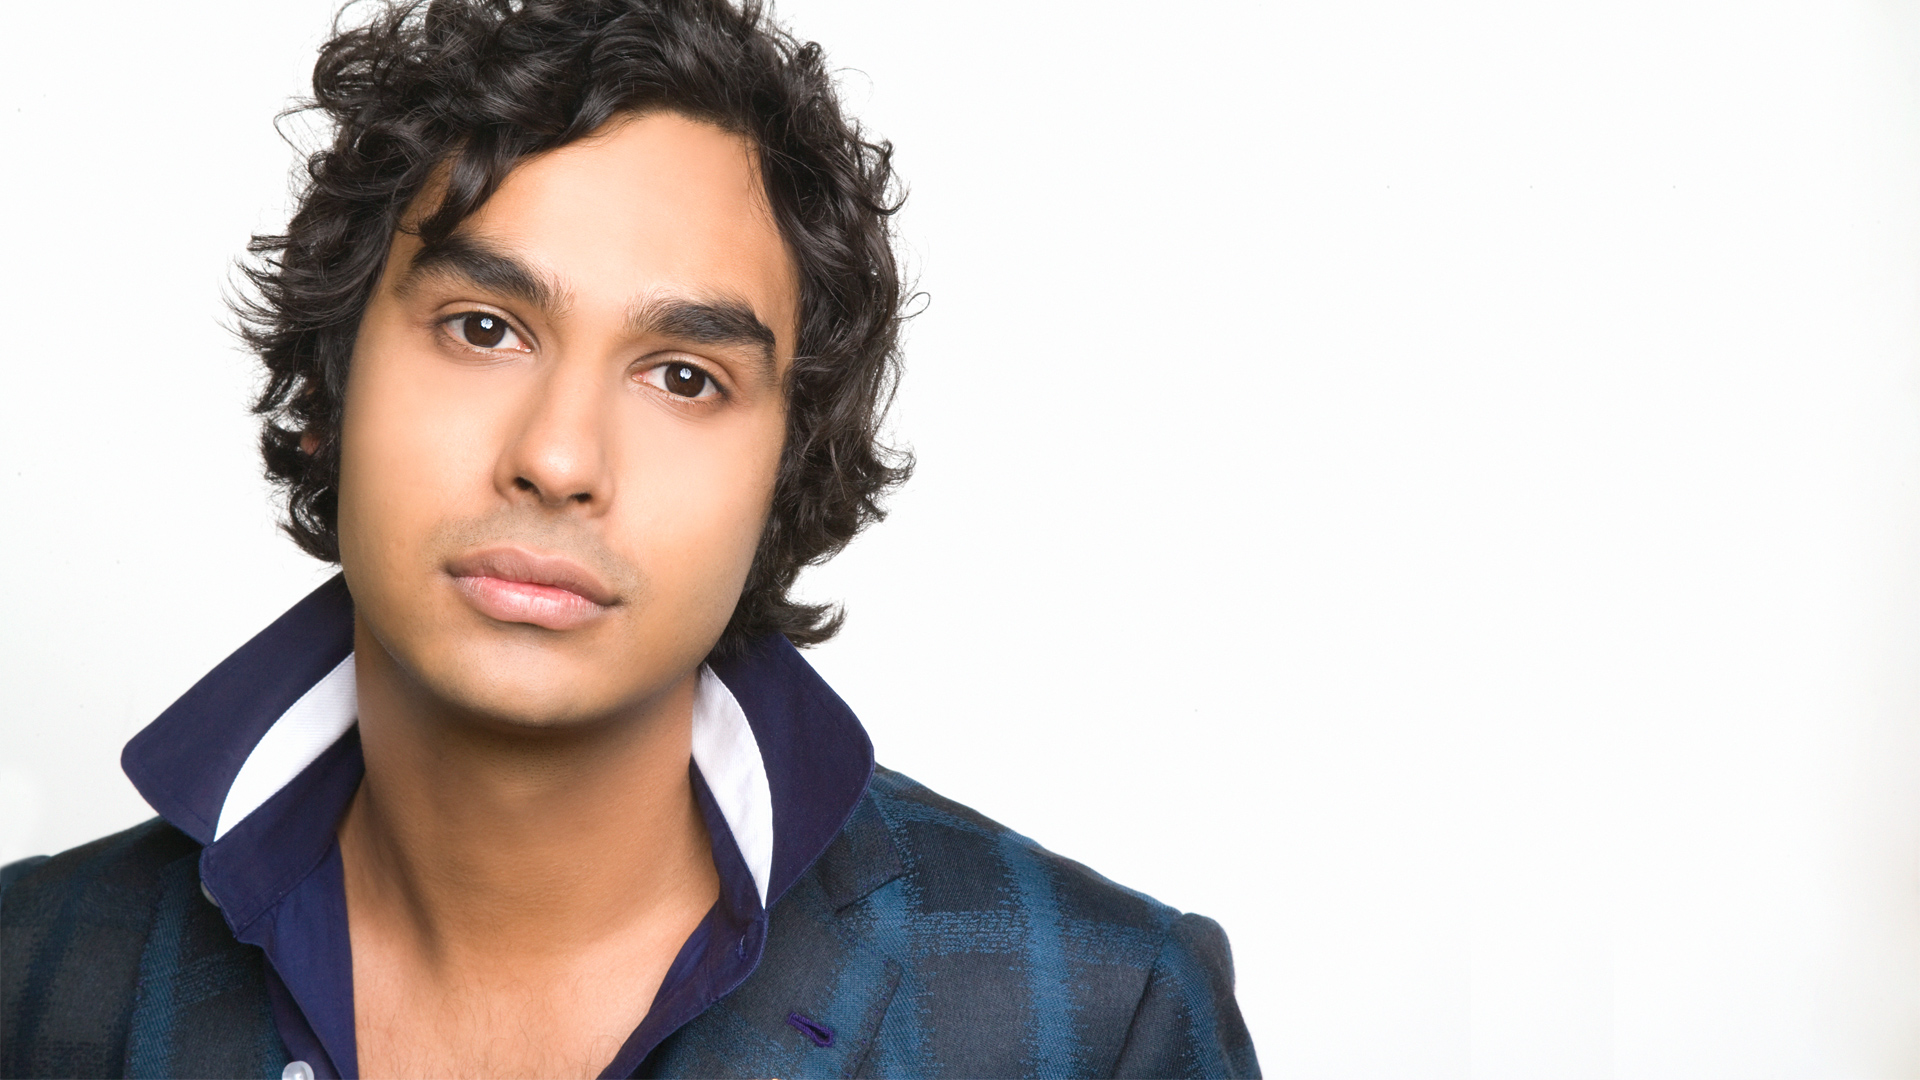 Kunal Nayyar gets serious for his cover shot